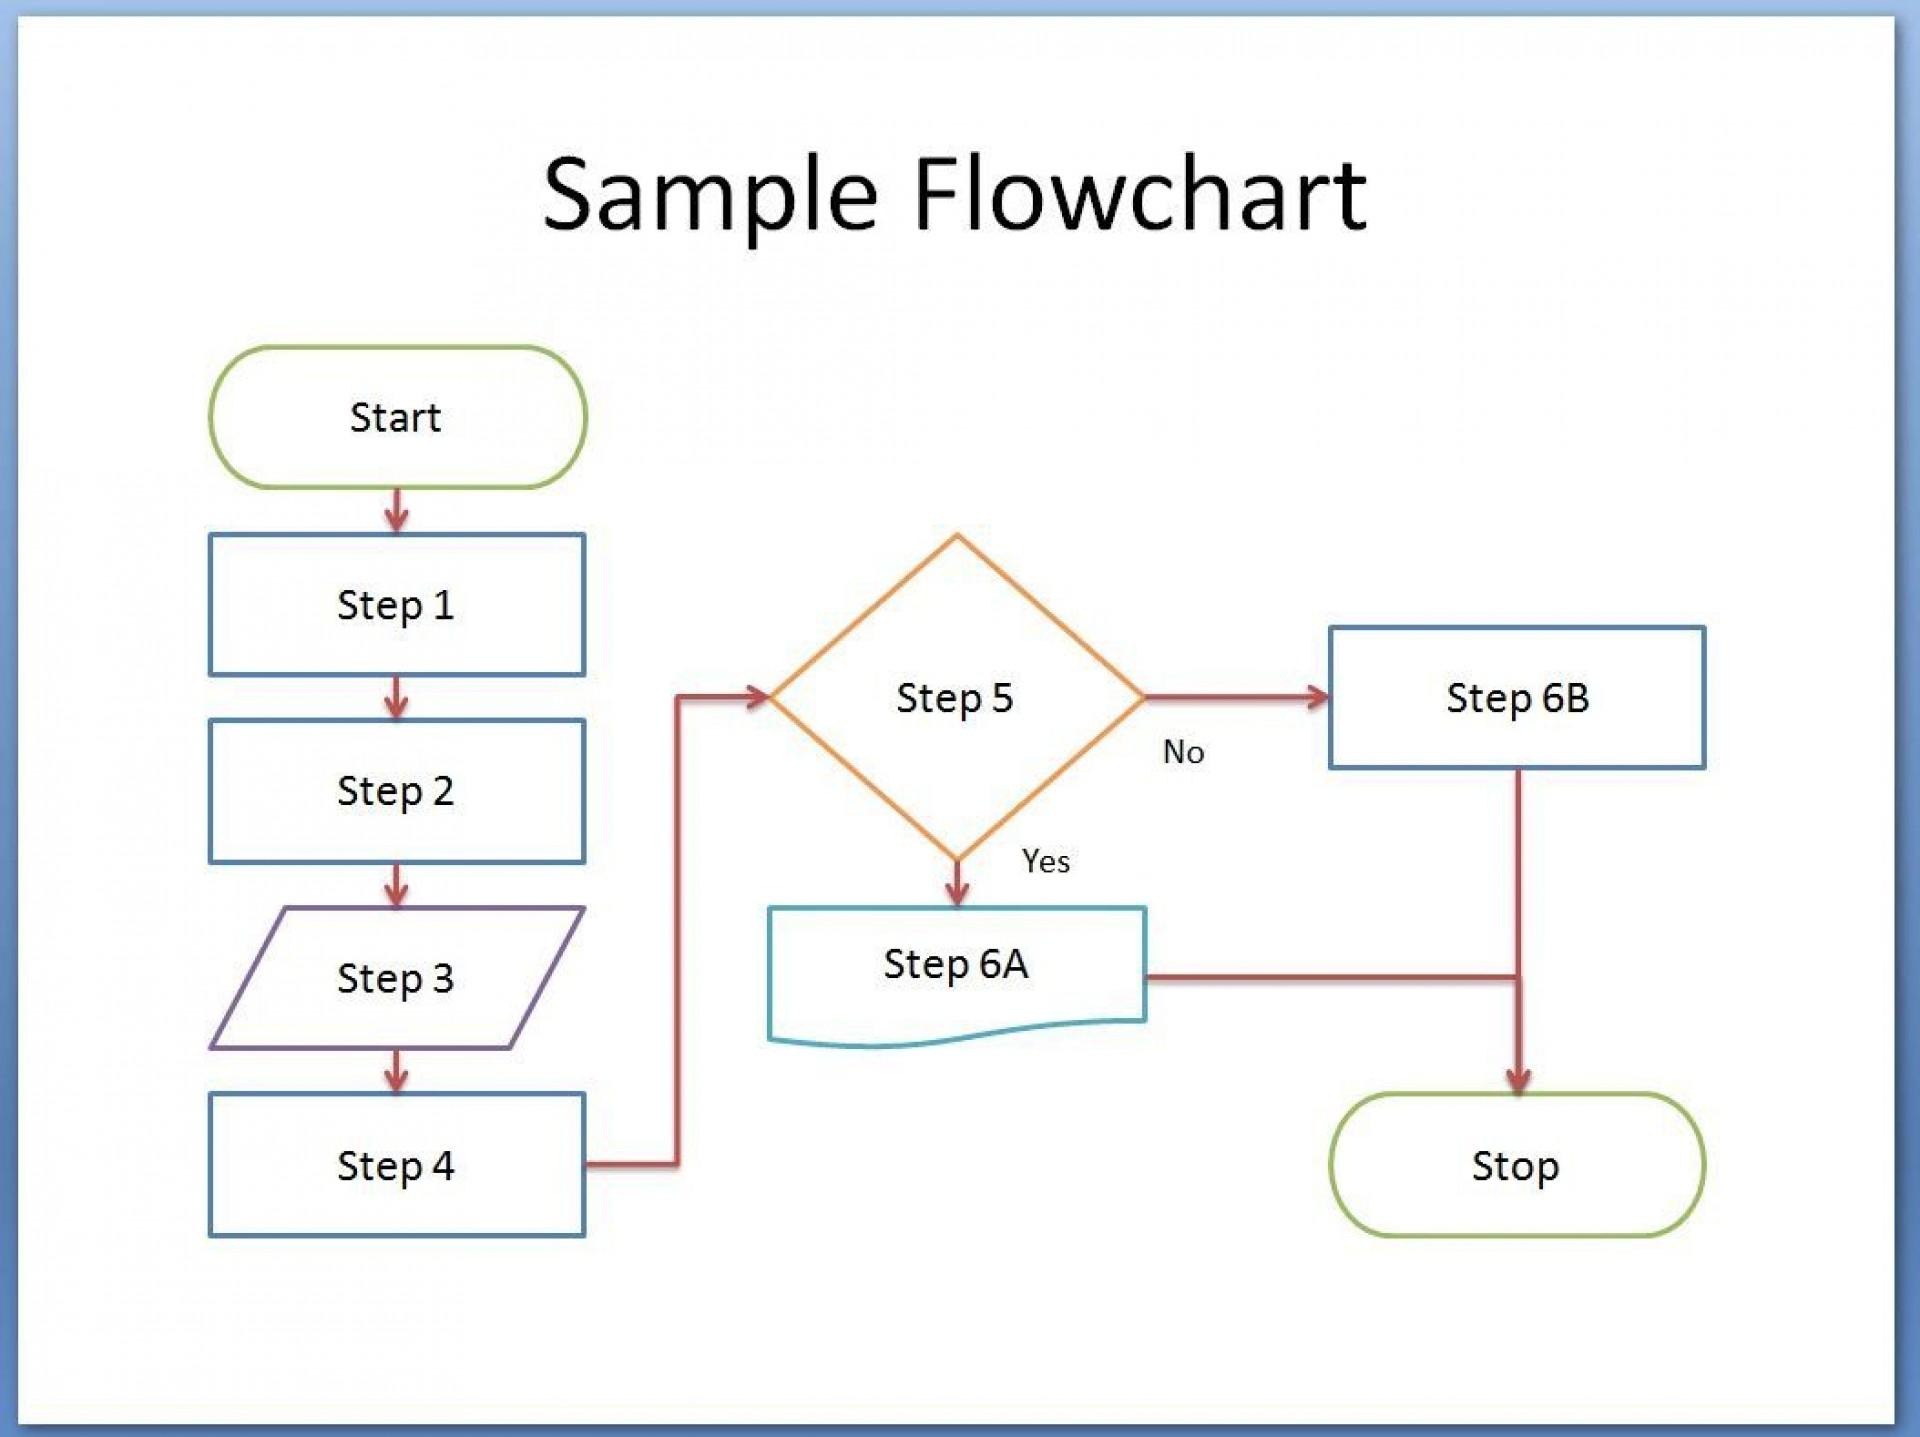 001 Stunning Free Flowchart Template Excel 2010 Image 1920